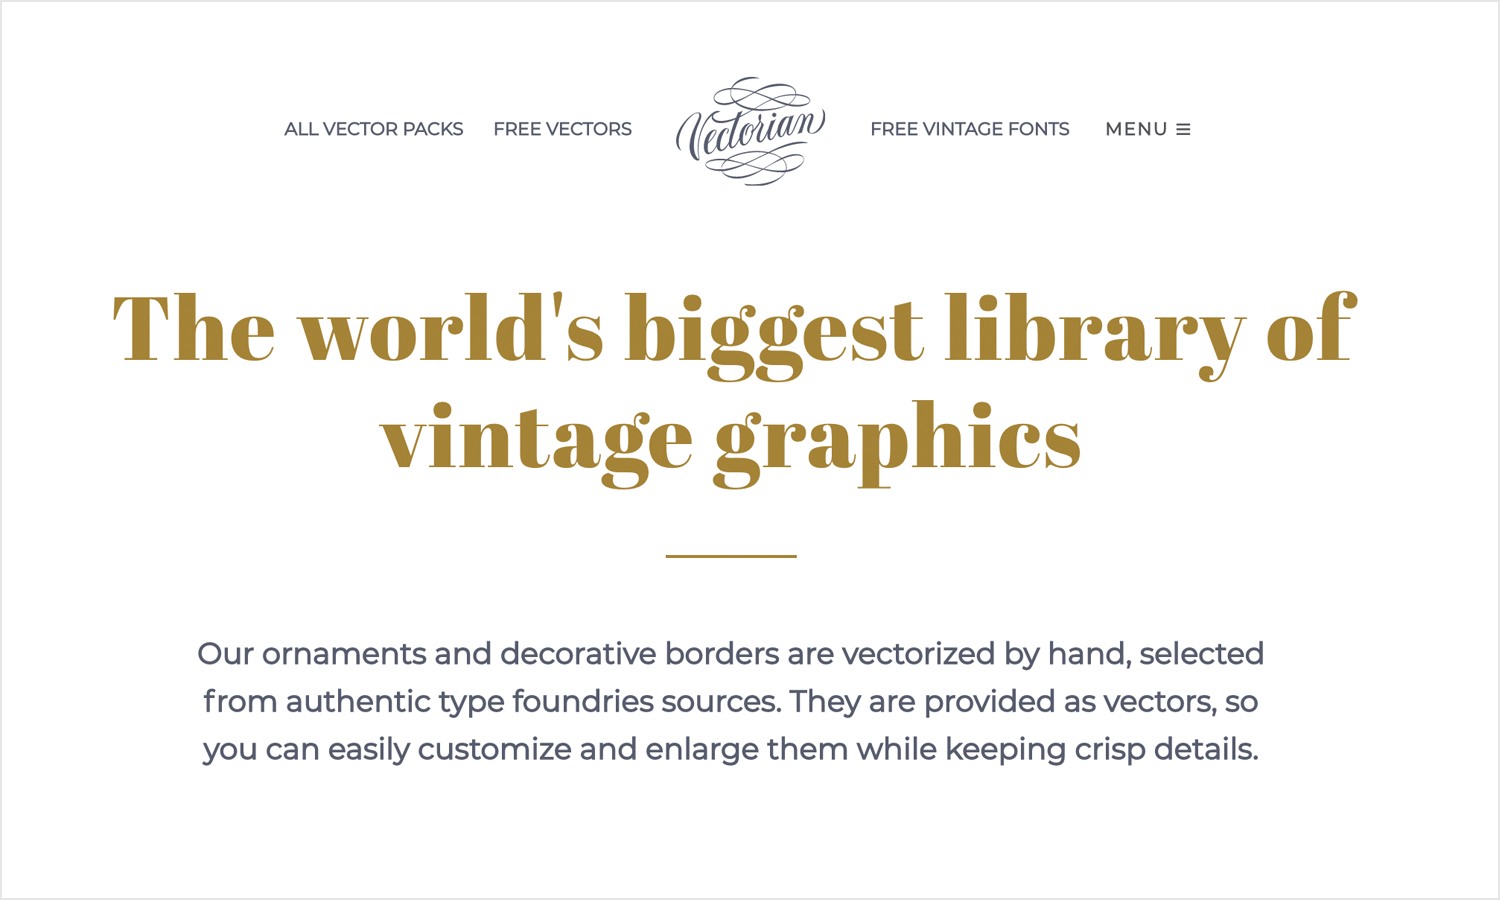 vectorian as place for free vintage style vector images